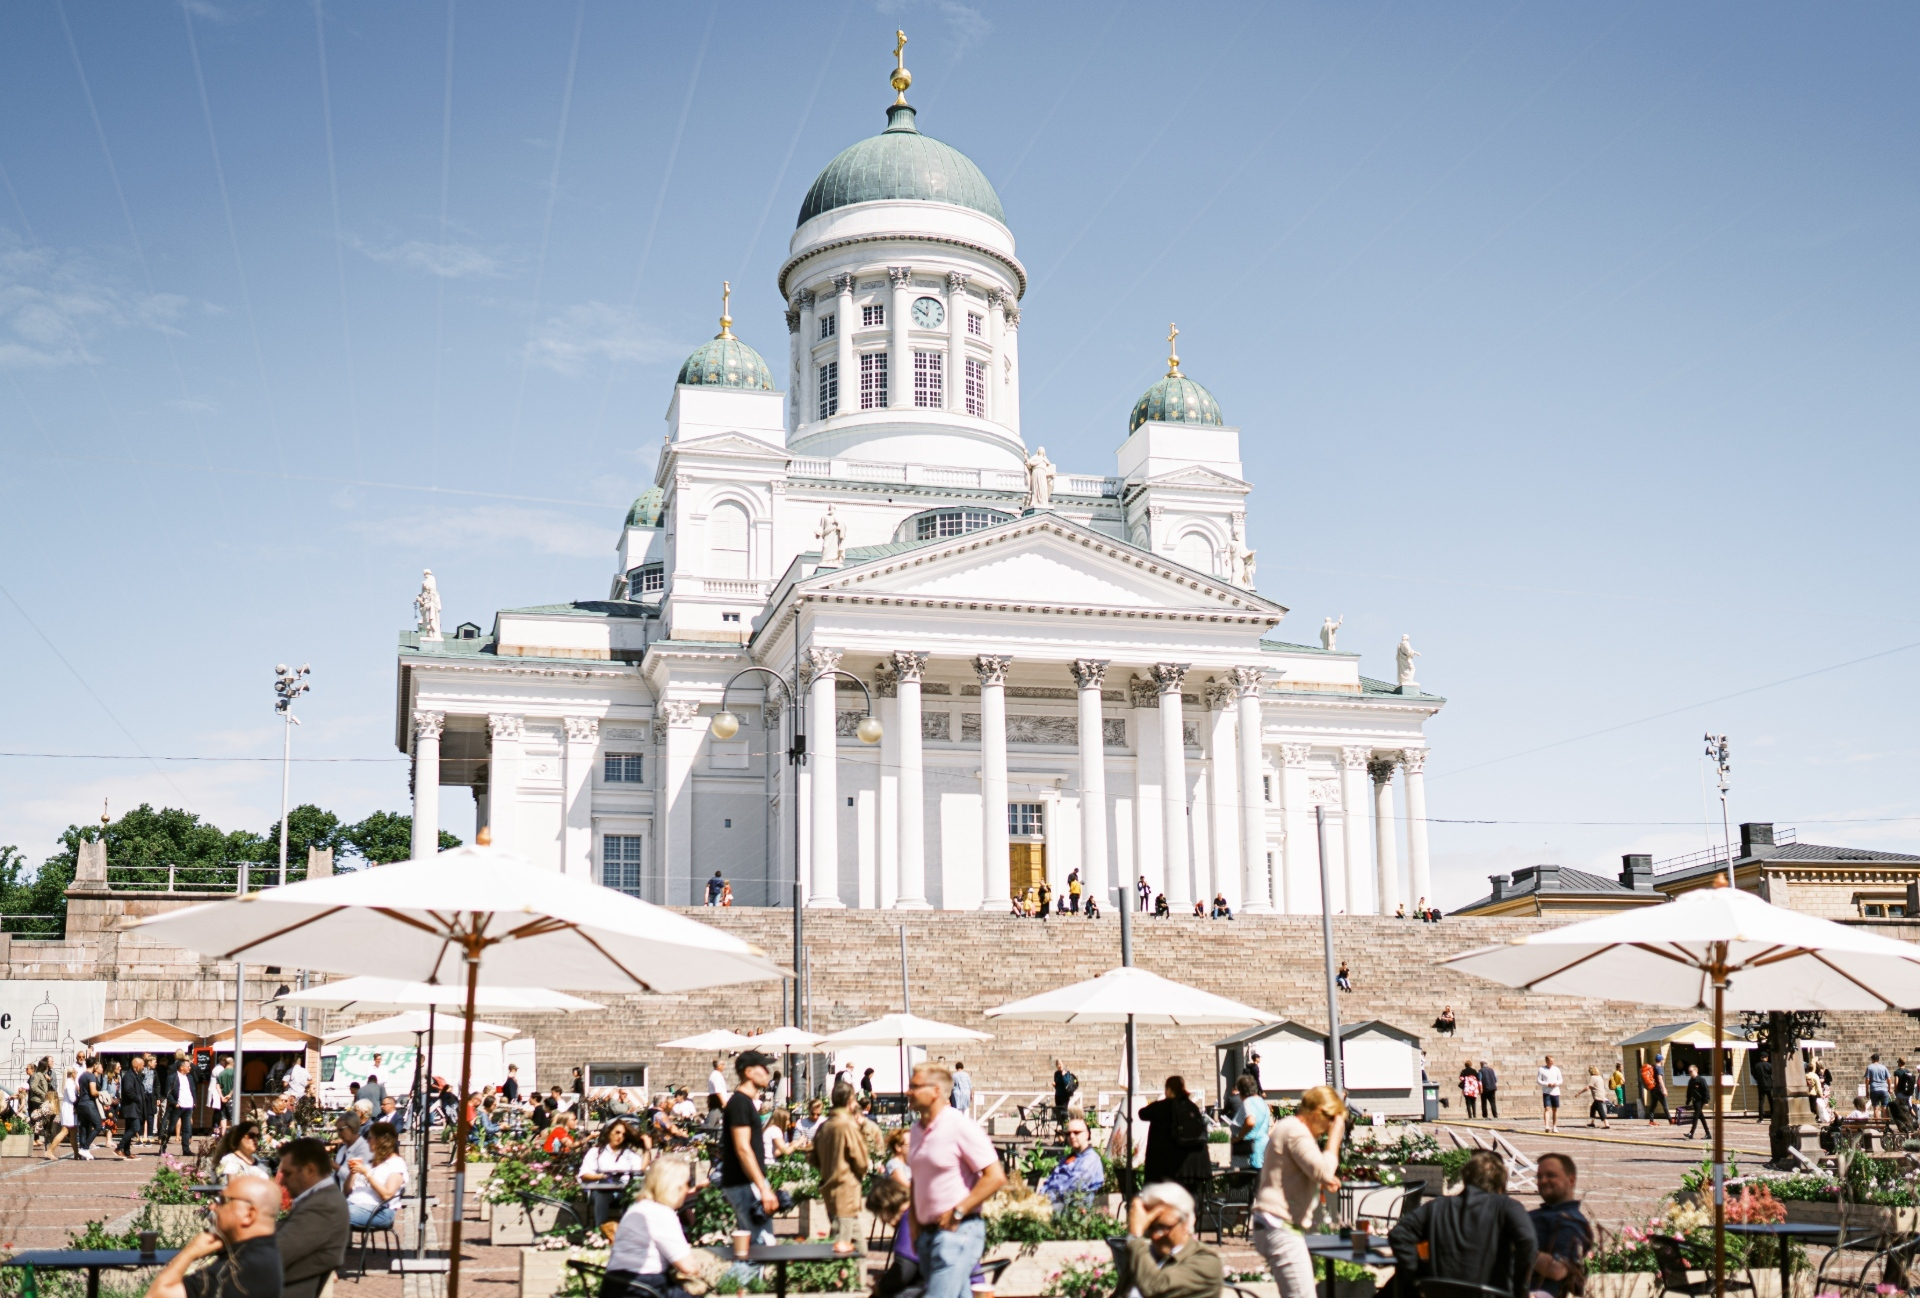 This square in Helsinki is now a huge restaurant